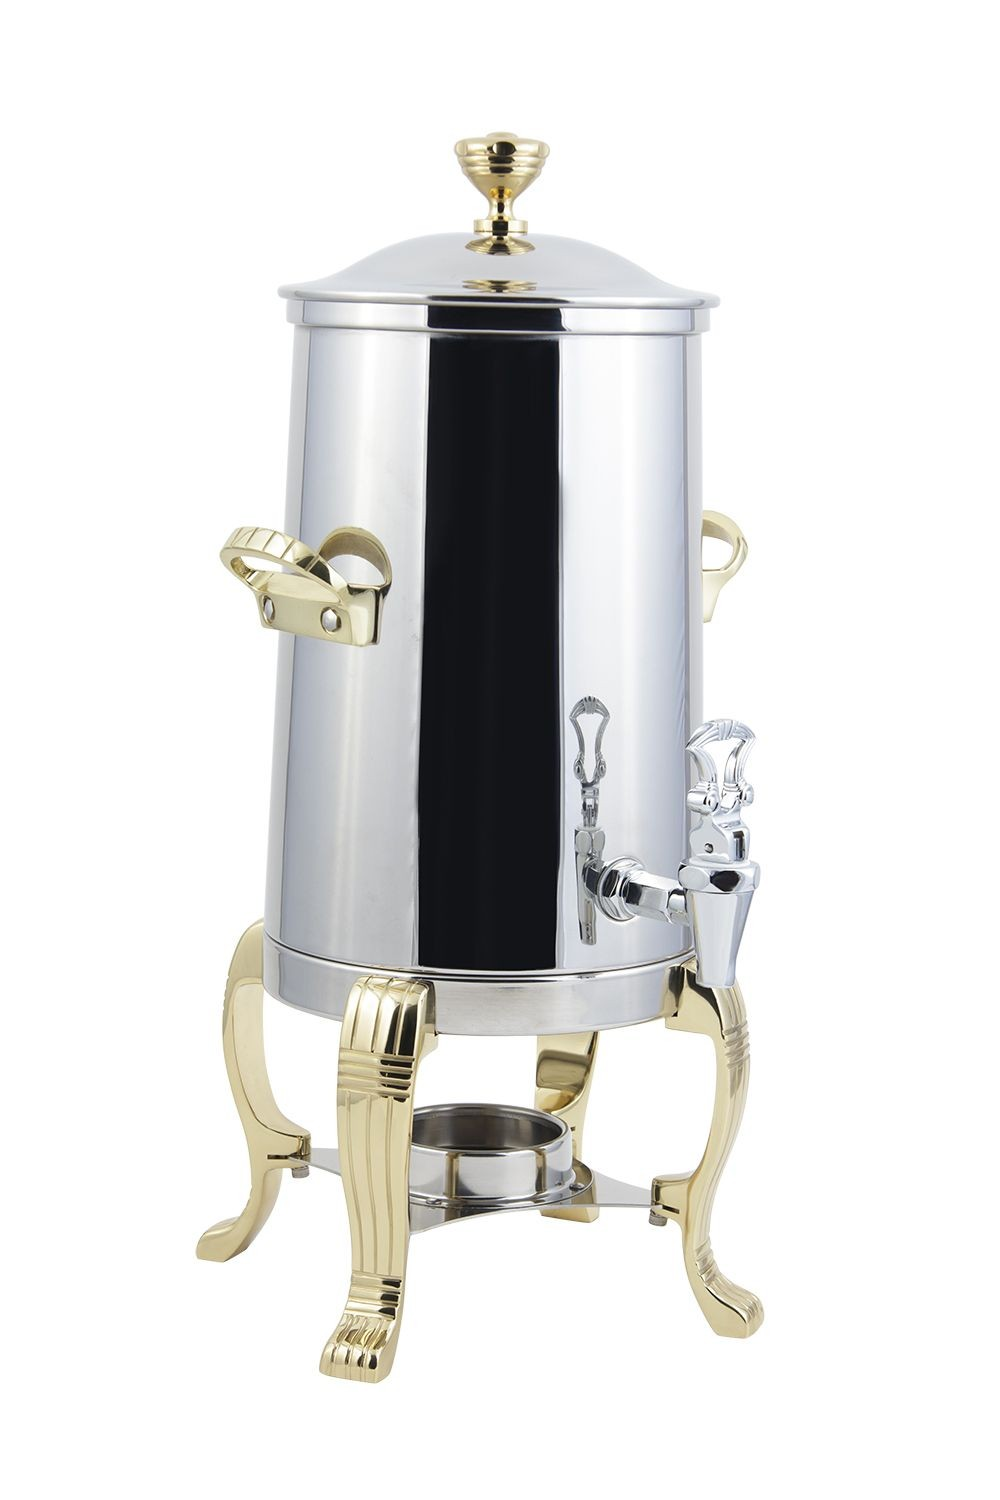 Bon Chef 41003 Aurora Single Wall Non-Insulated Coffee Urn, 3 1/2 Gallon